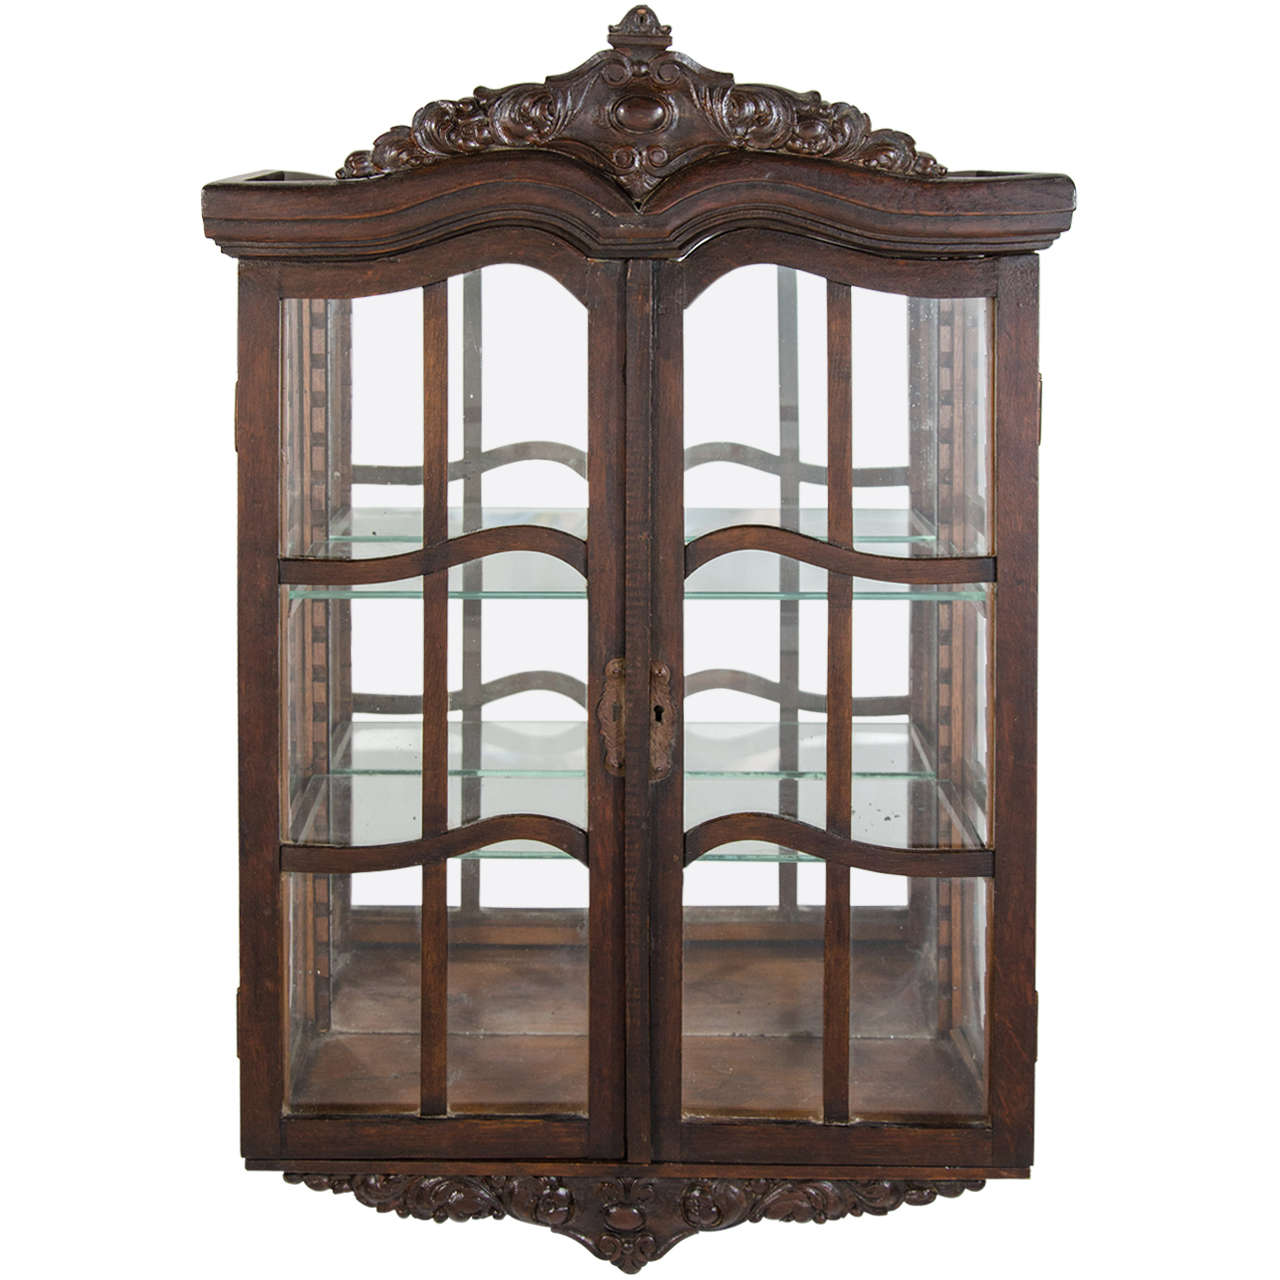 Victorian Antique Curio Cabinet with Hand Carved Wood Designs For Sale - Victorian Antique Curio Cabinet With Hand Carved Wood Designs For